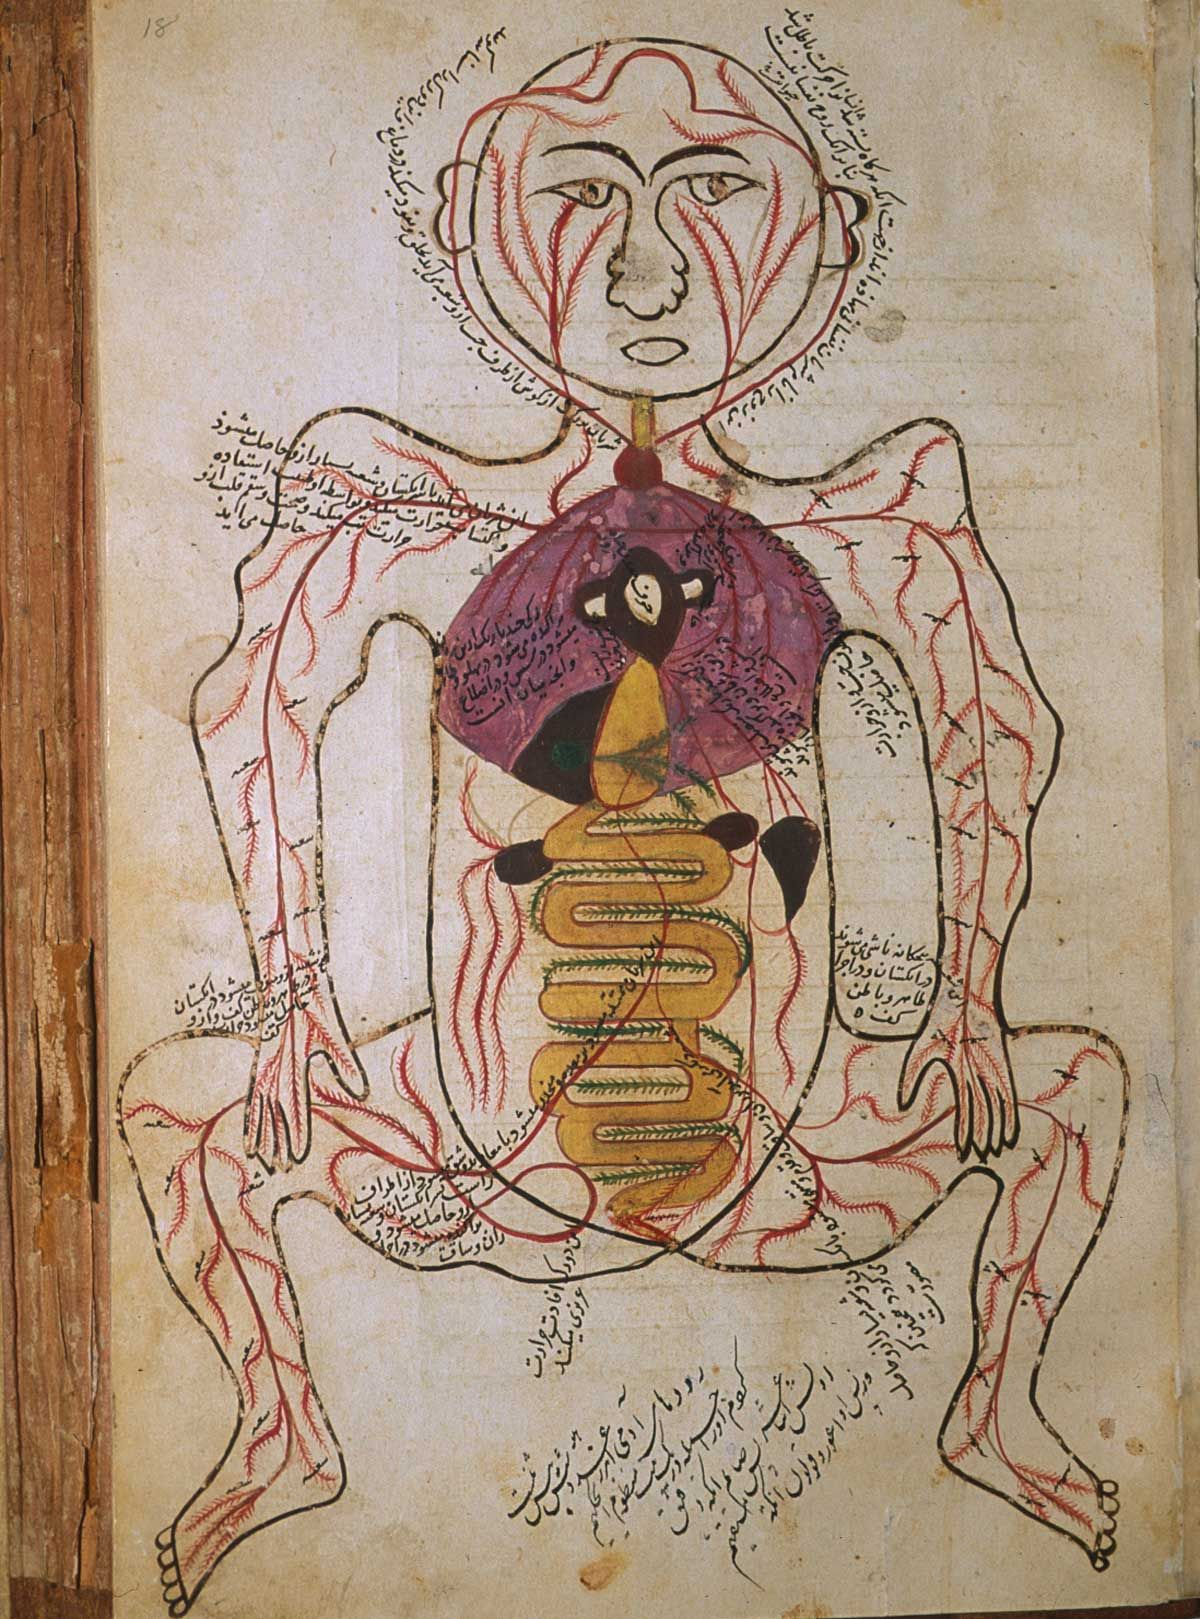 by Mansur ibn Ilyas, from Tashrih-i badan-i insan [Anatomy of the Human Body], Iran, ca. 1390